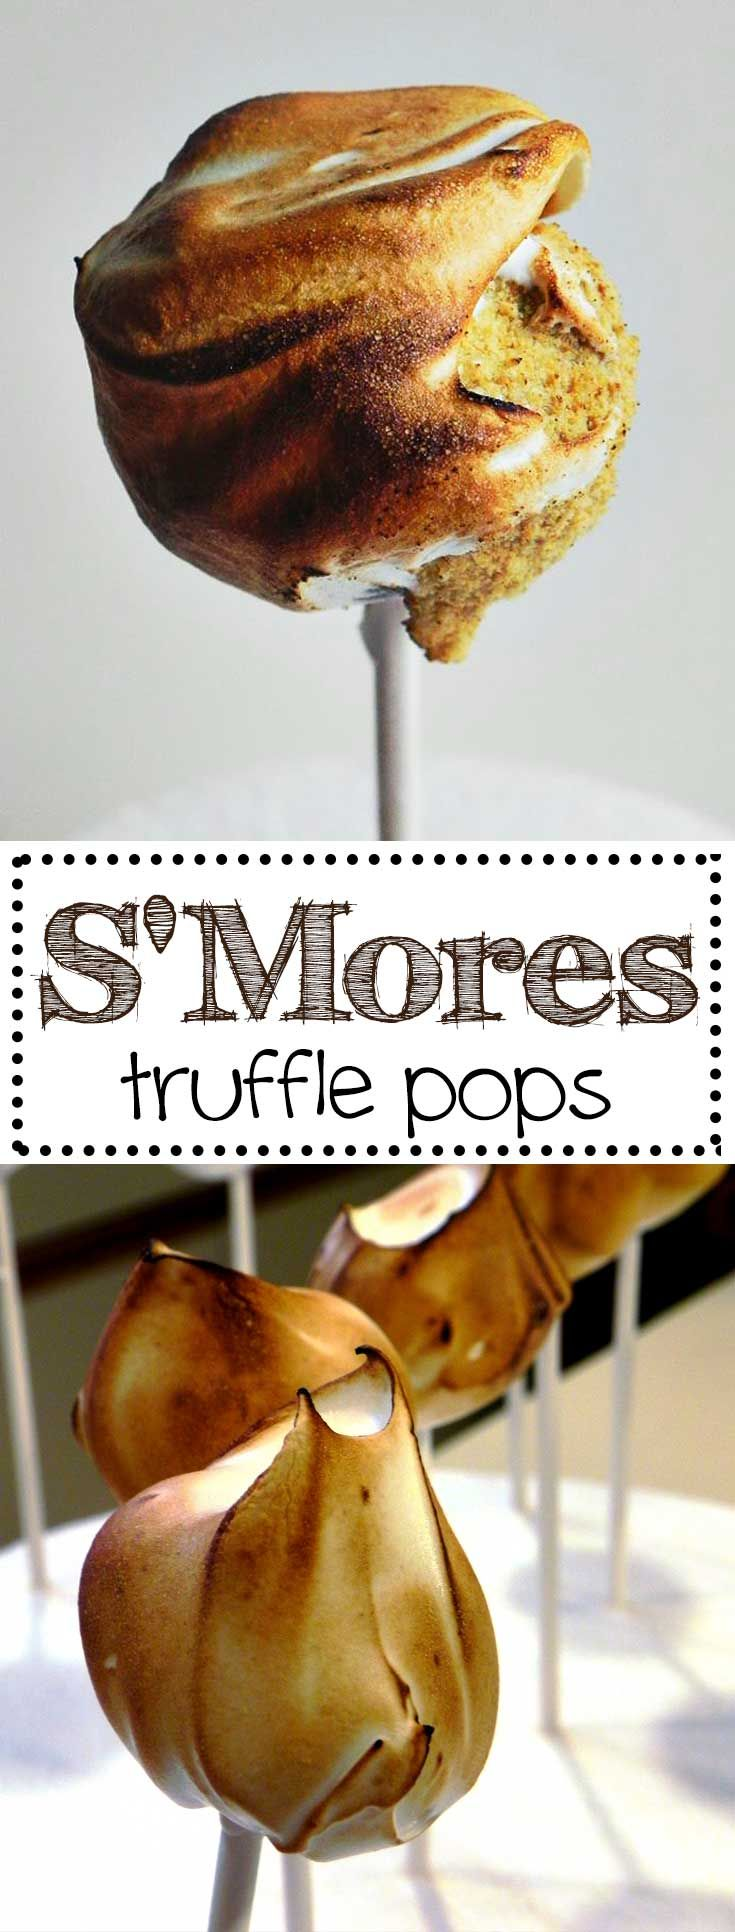 This recipe for S'Mores Truffle Pops will make you the star of the party! They are everything you remember from around the campfire in a tiny bite sized dessert sure to wow your guests! via @karascakes